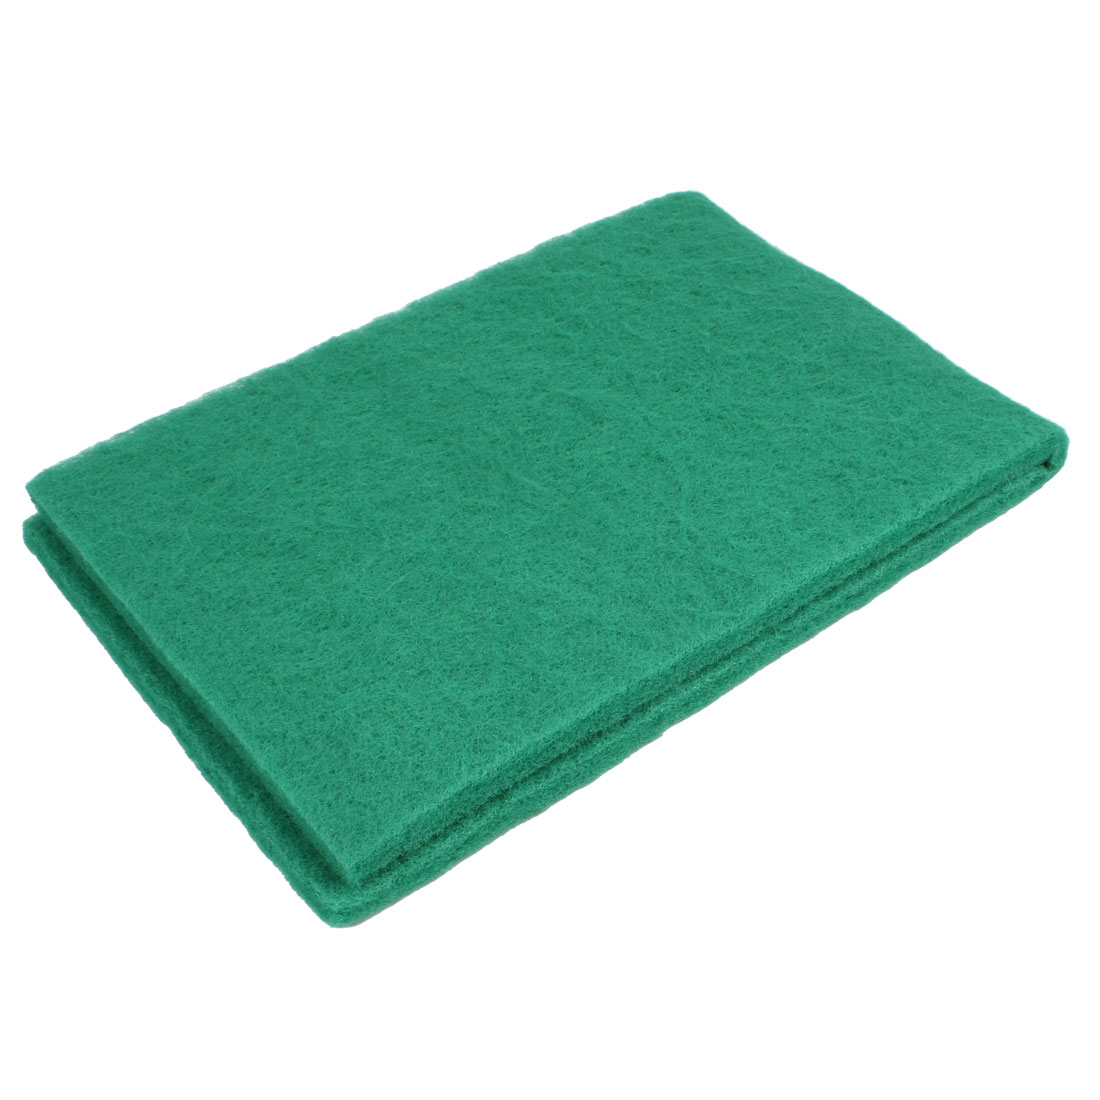 Fish Tank Aquarium Rectangle Shape Sponge Filter Biochemical Cotton Green